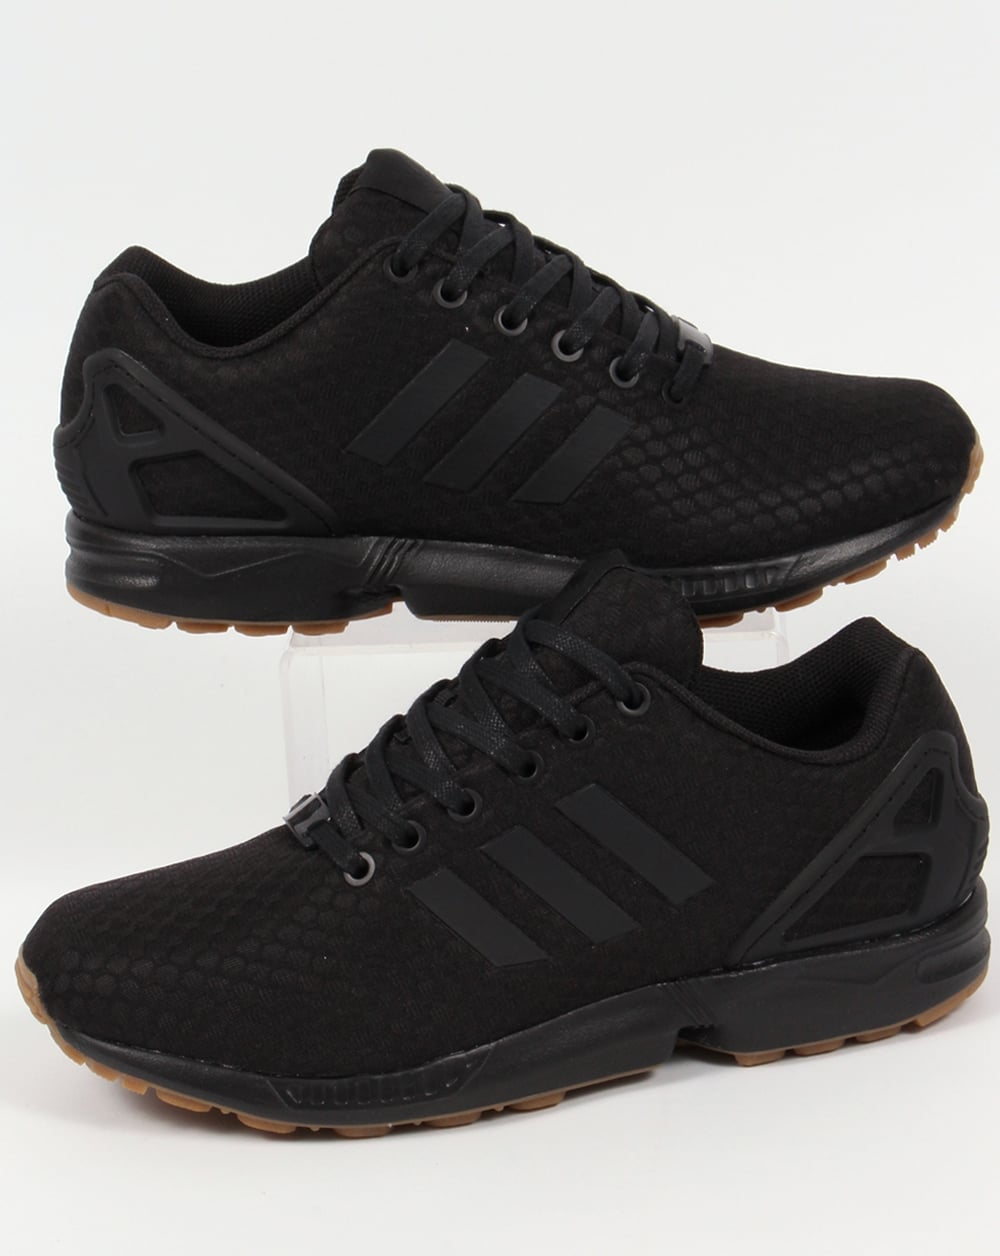 buy popular c2d92 bf7d0 Adidas ZX Flux Trainers Black/Black/Gum